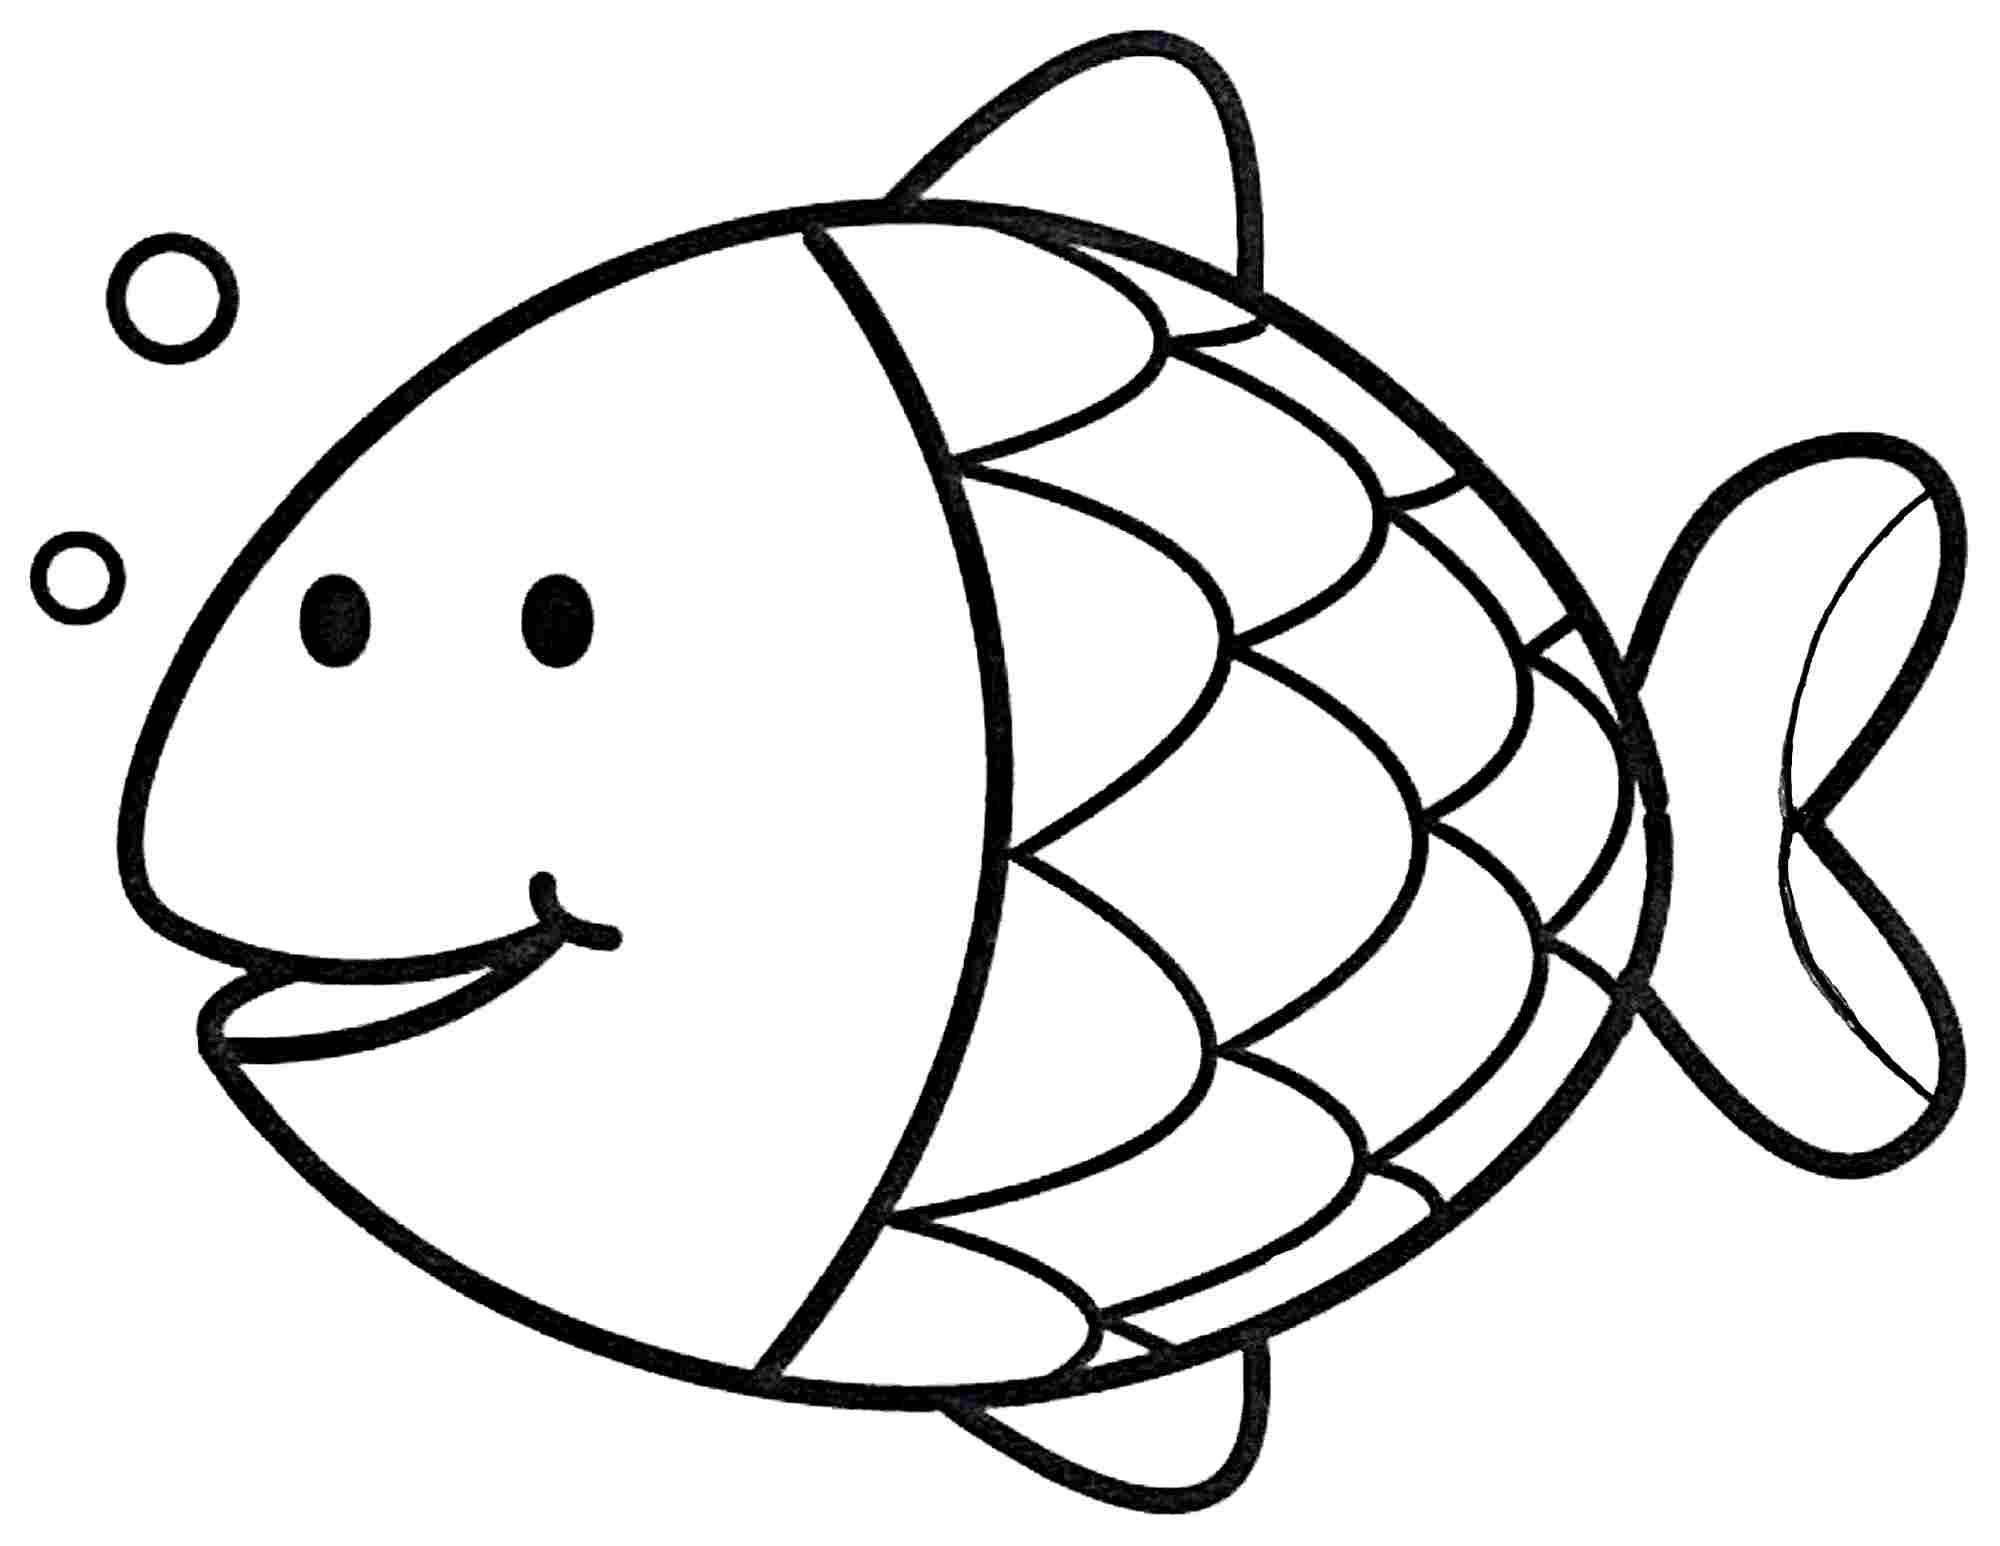 Coloring Pages Simple : Simple fish coloring pages home